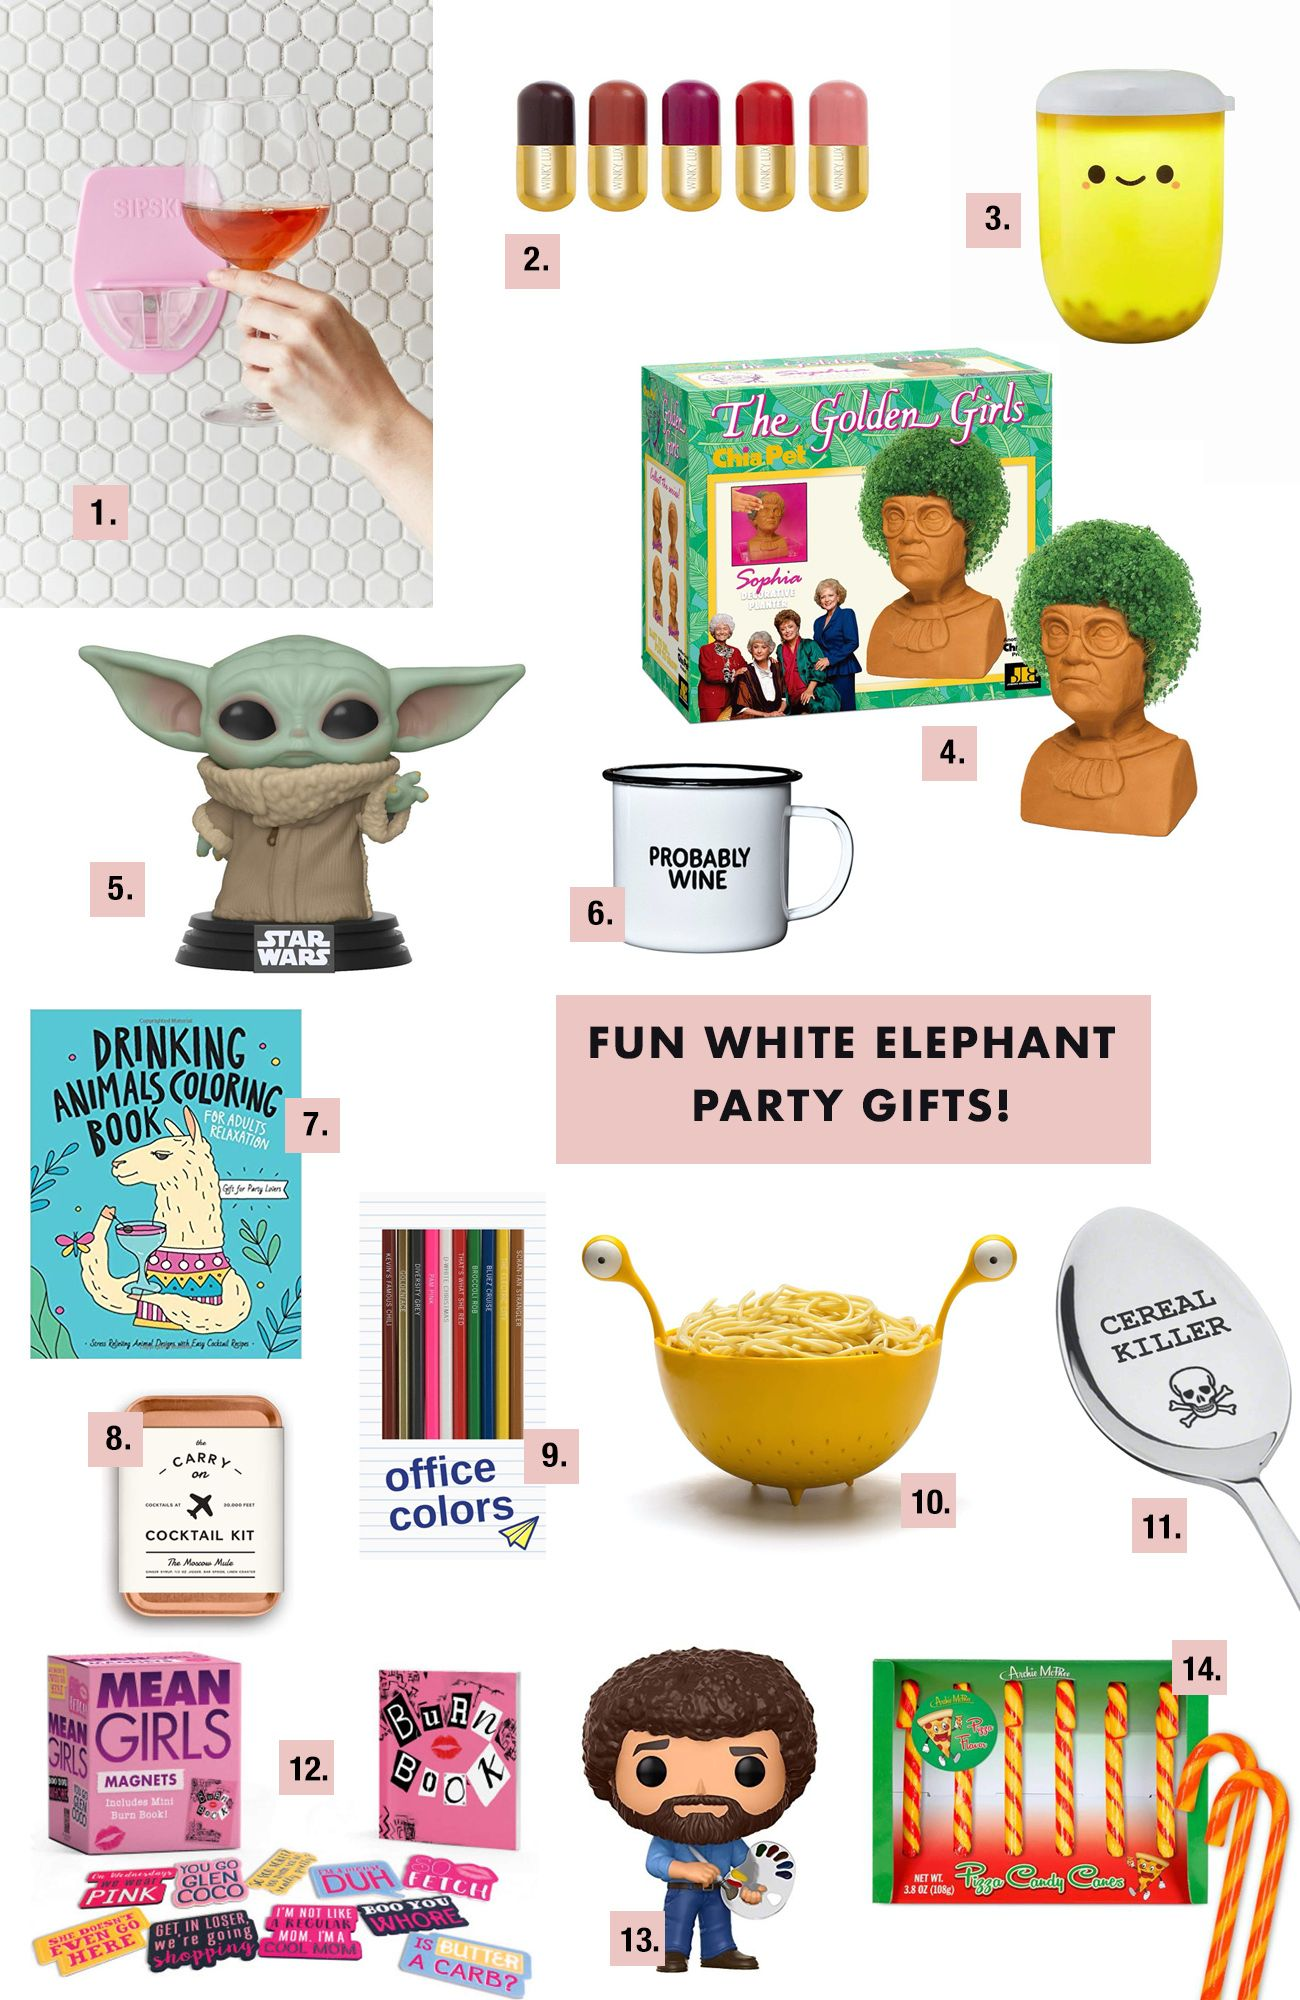 How to Throw a Rad White Elephant Party Rules, Gift